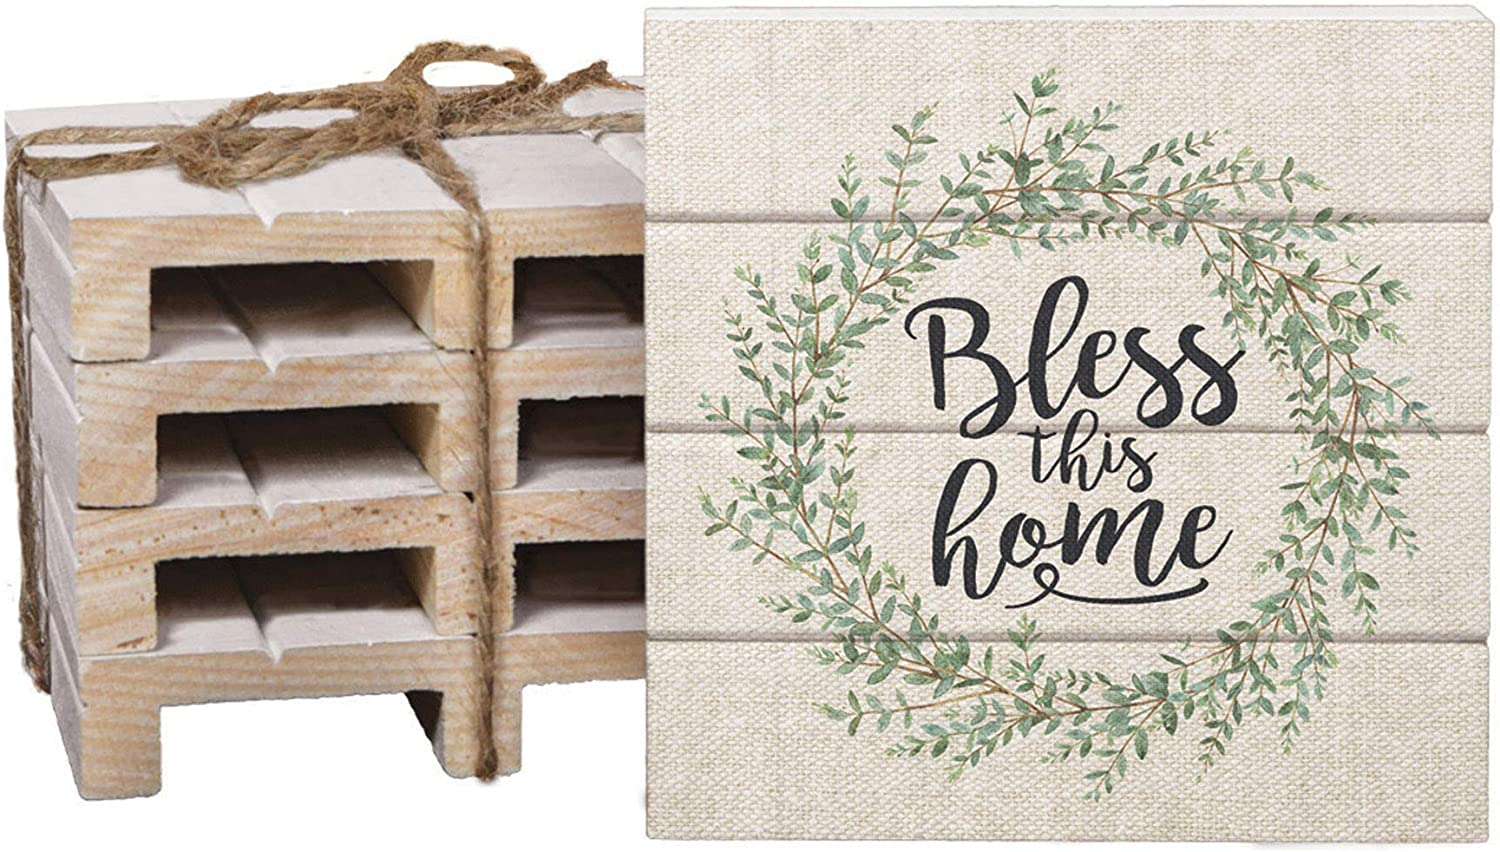 Bless This Home Wreath Linen Look 4 x 4 Inch Dried Pine Wood Pallet Coaster, Pack of 4